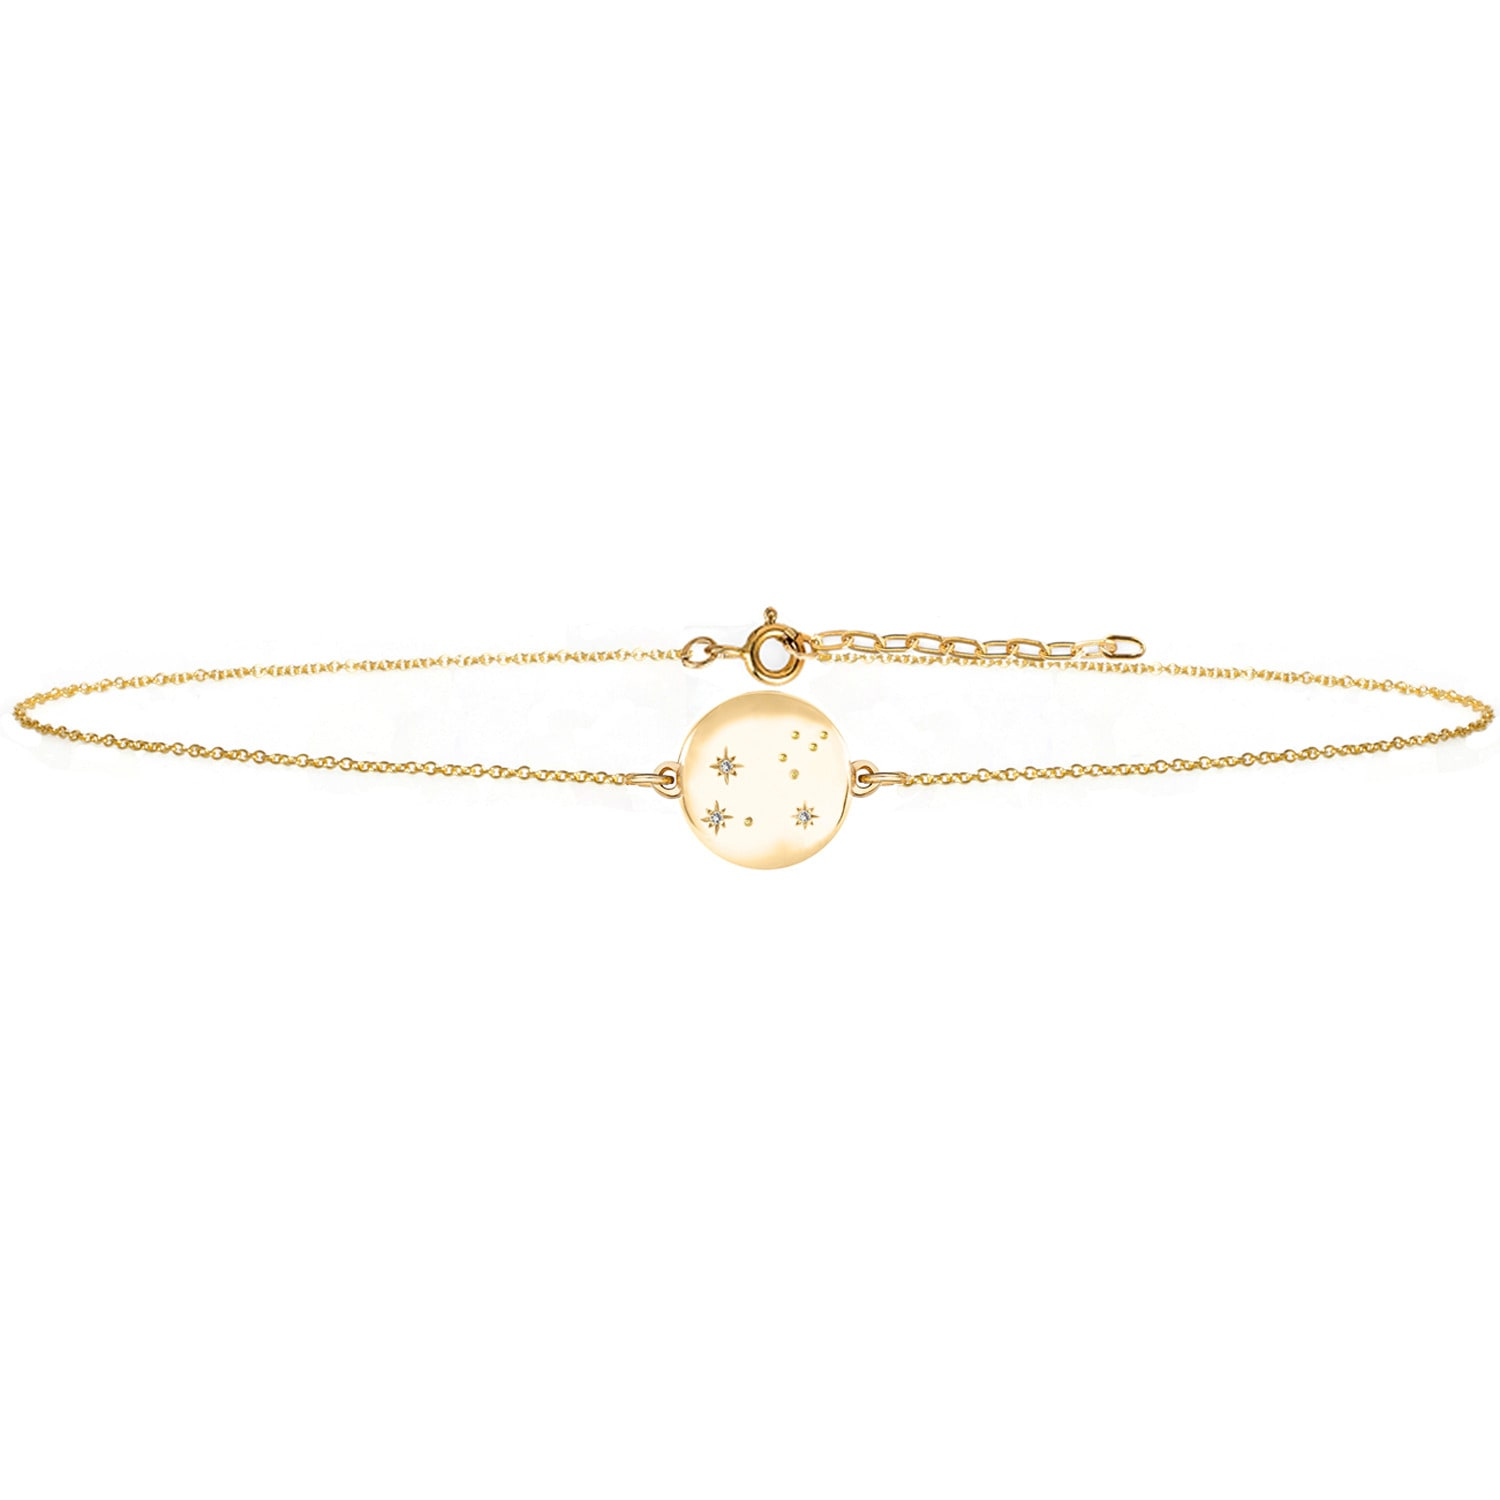 No 13 - Leo Zodiac Constellation Choker Diamonds & Gold